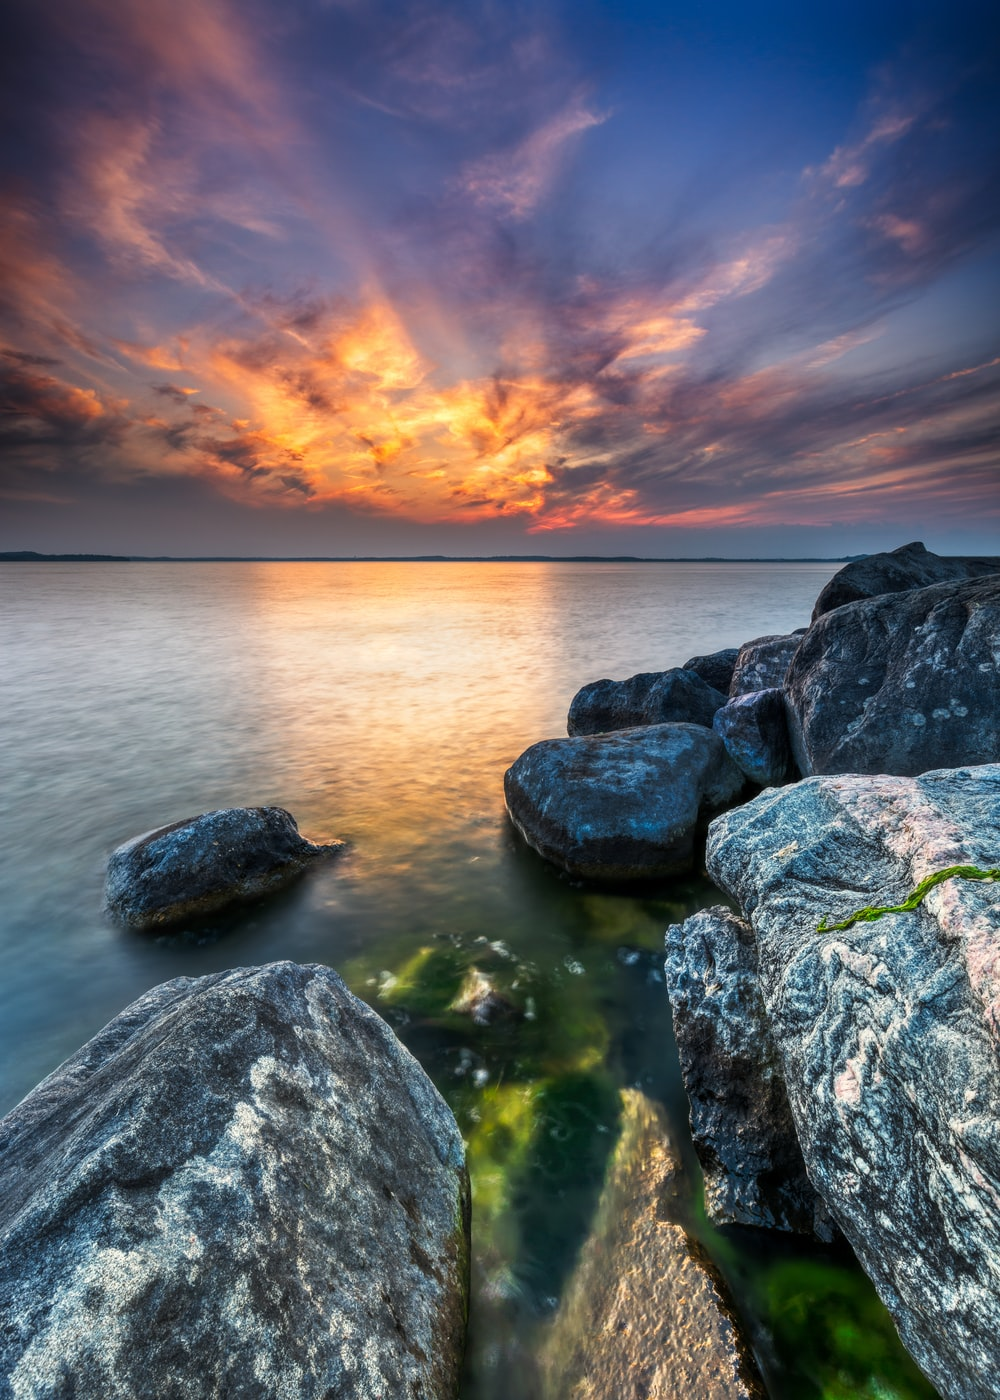 rock formations beside body of water at golden hour